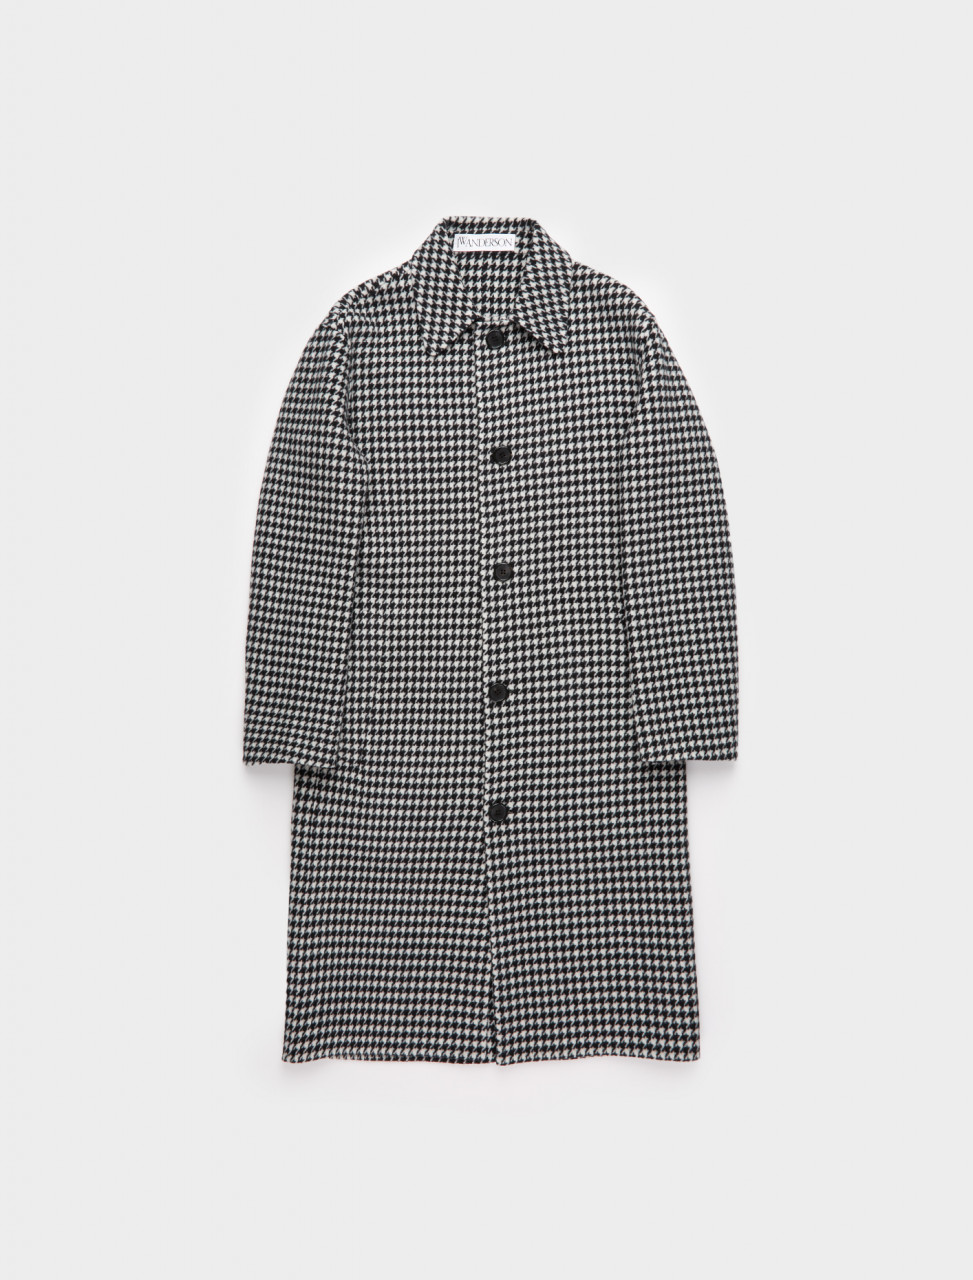 179-CO0070-PG0351-901 JW ANDERSON HOUNDSTOOTH OVERCOAT